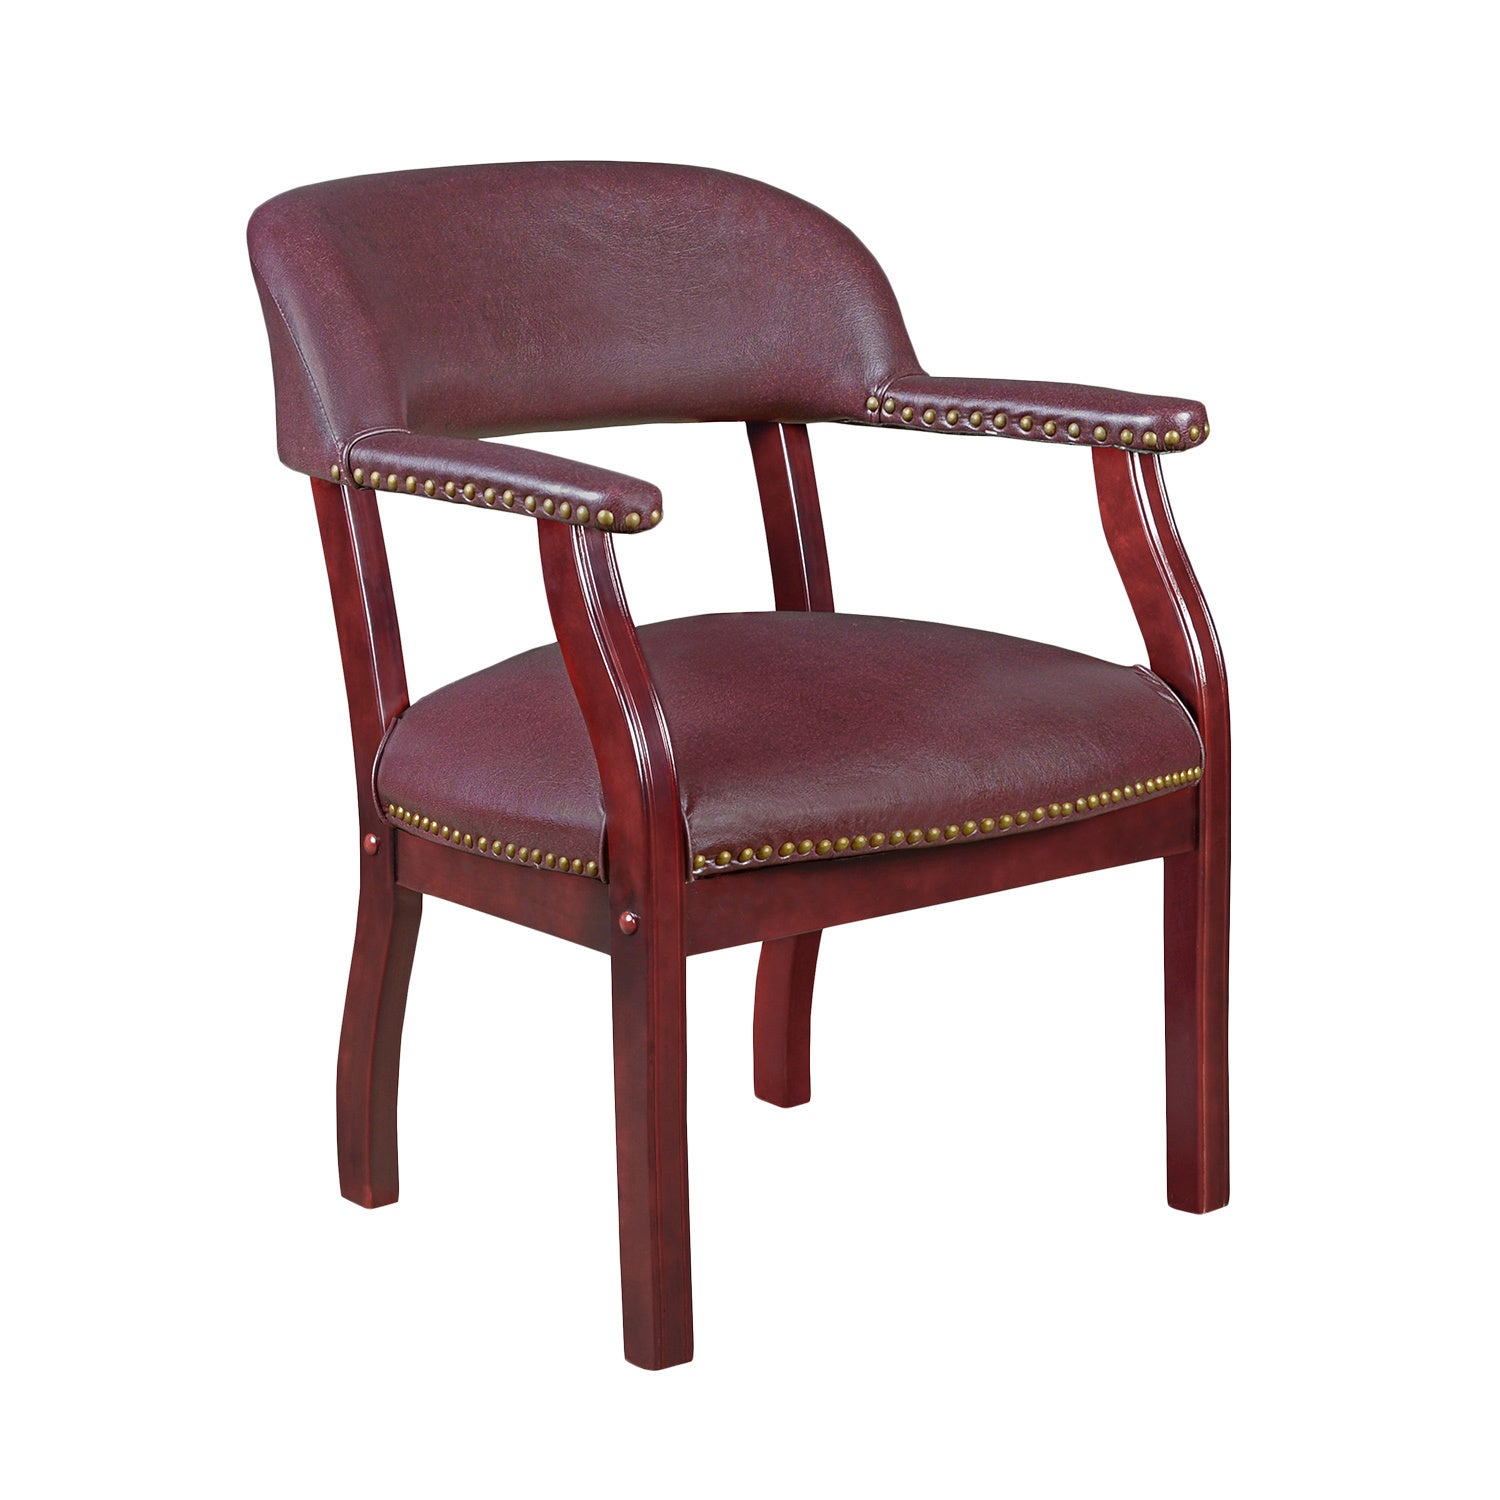 Regency Seating Ivy League Captains Chair (Red)